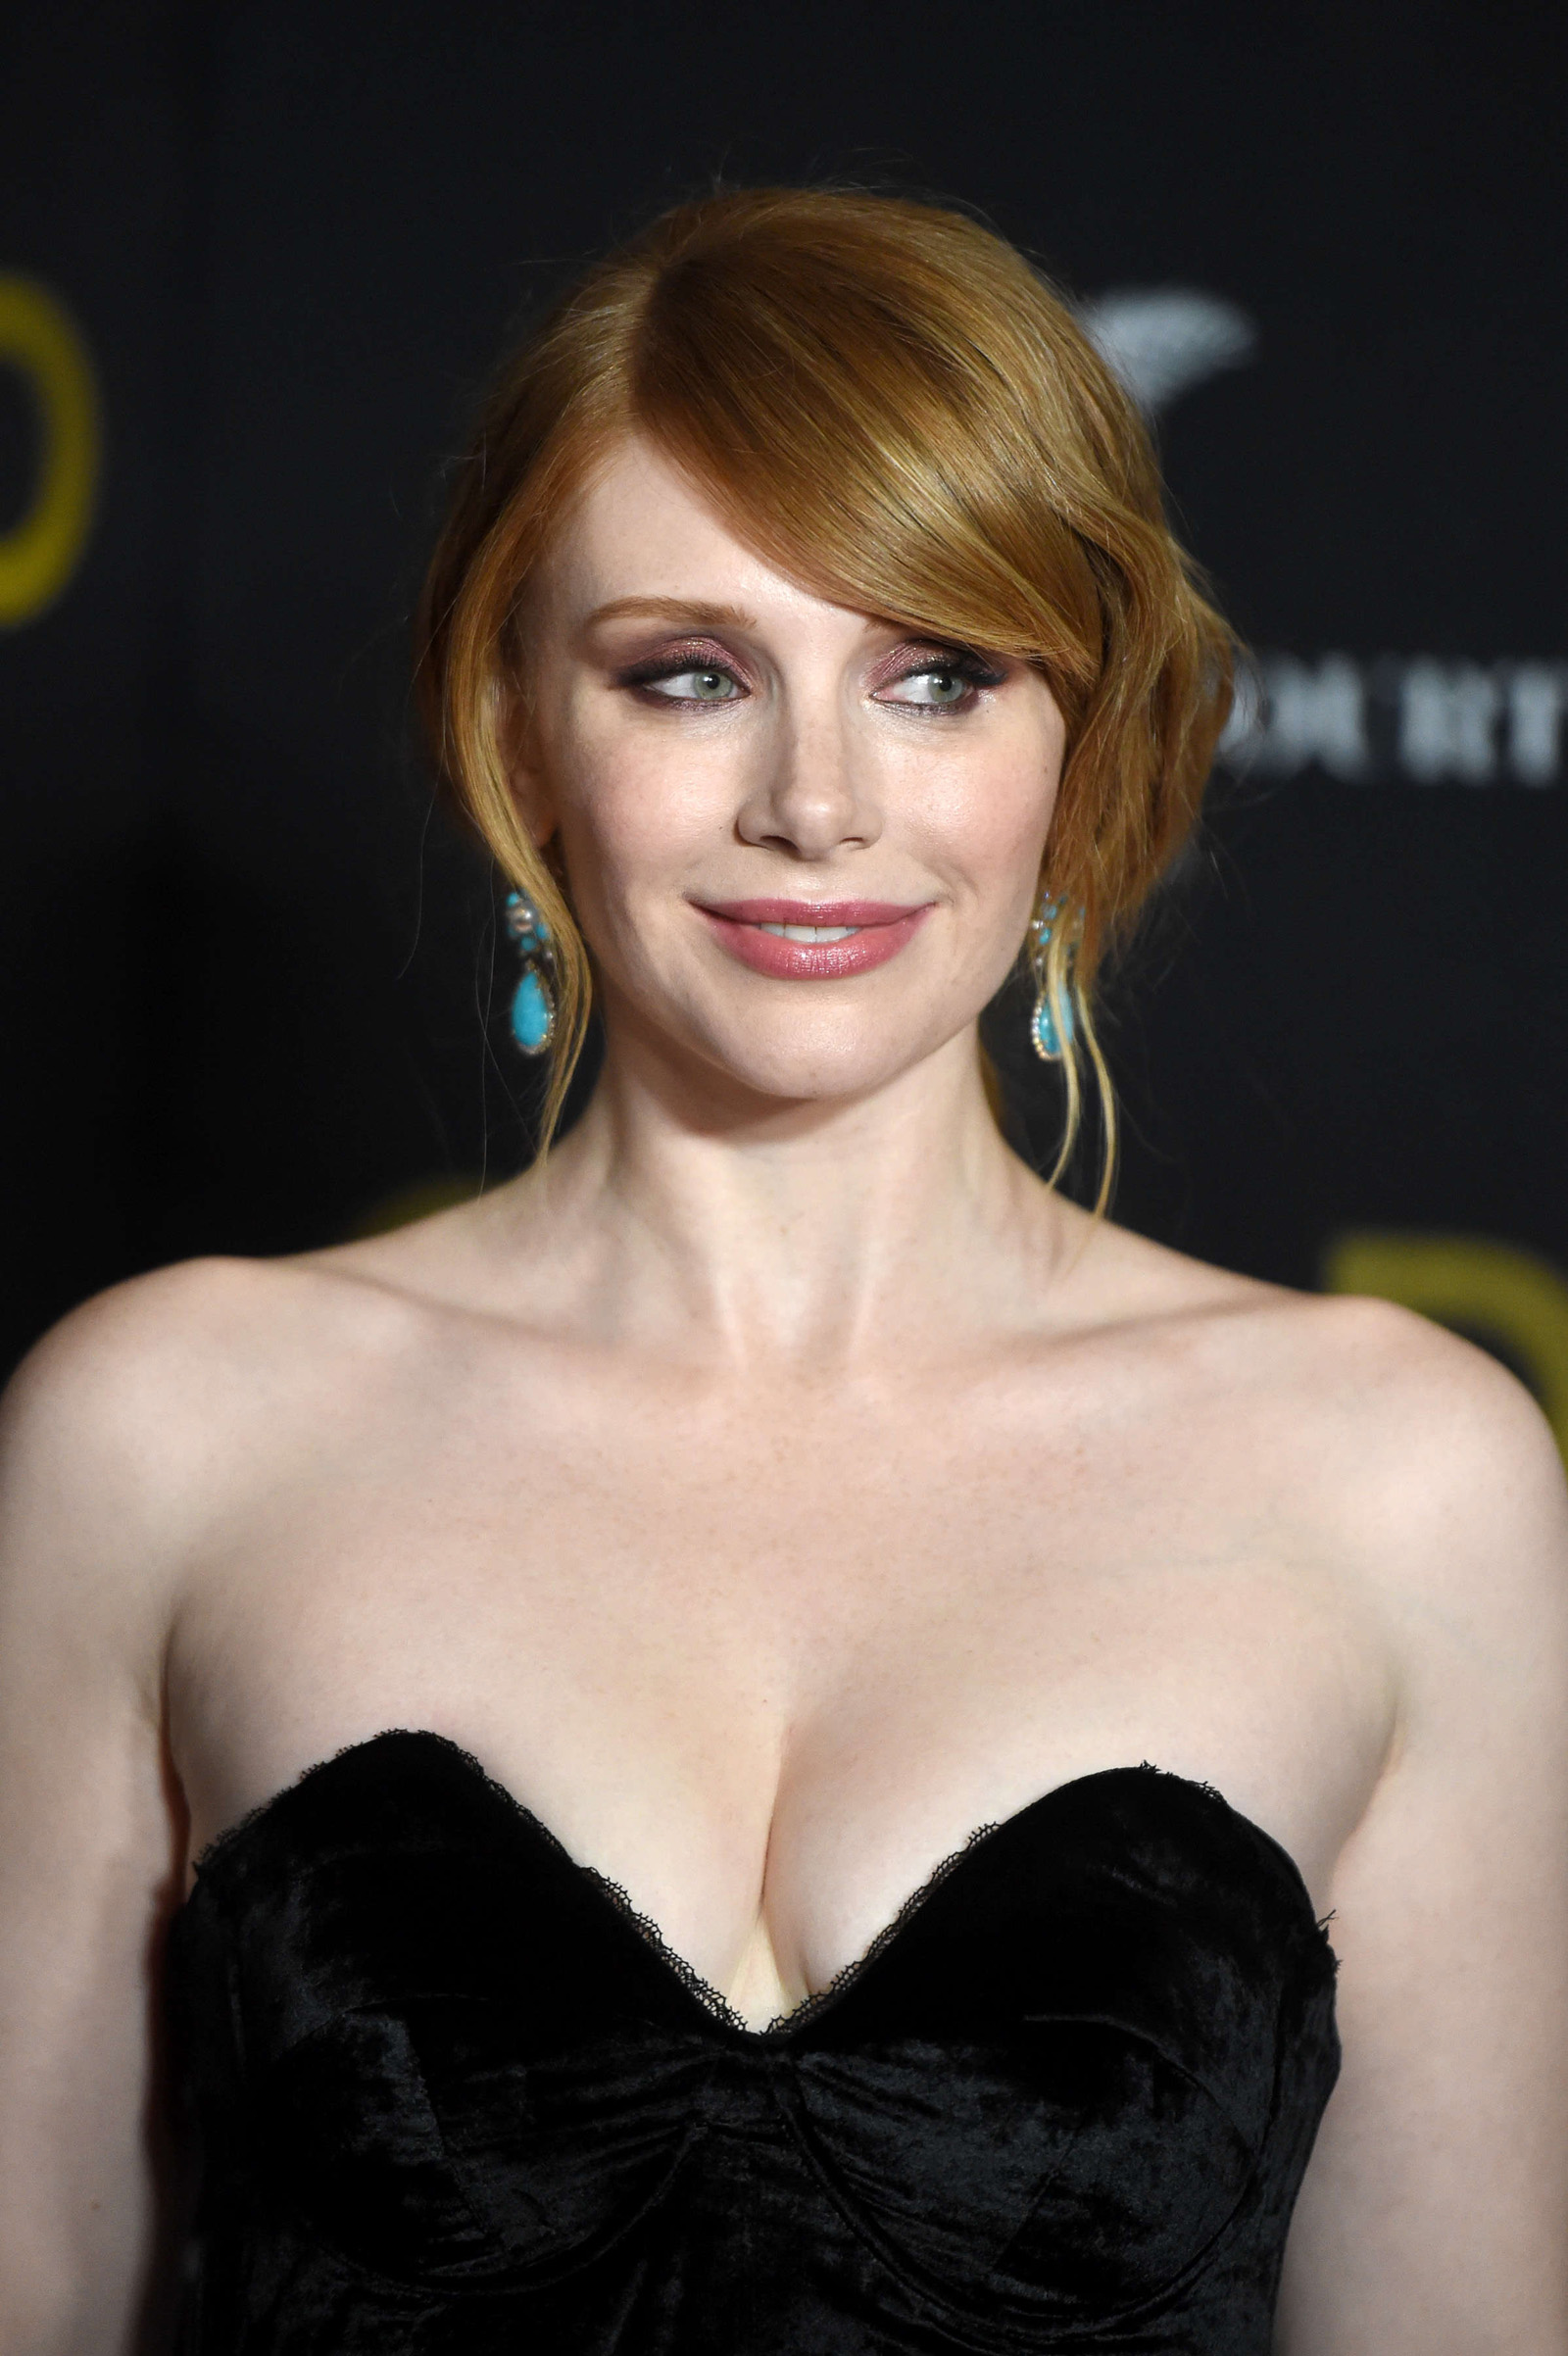 Young Bryce Dallas Howard nude (96 photo), Pussy, Hot, Instagram, legs 2020